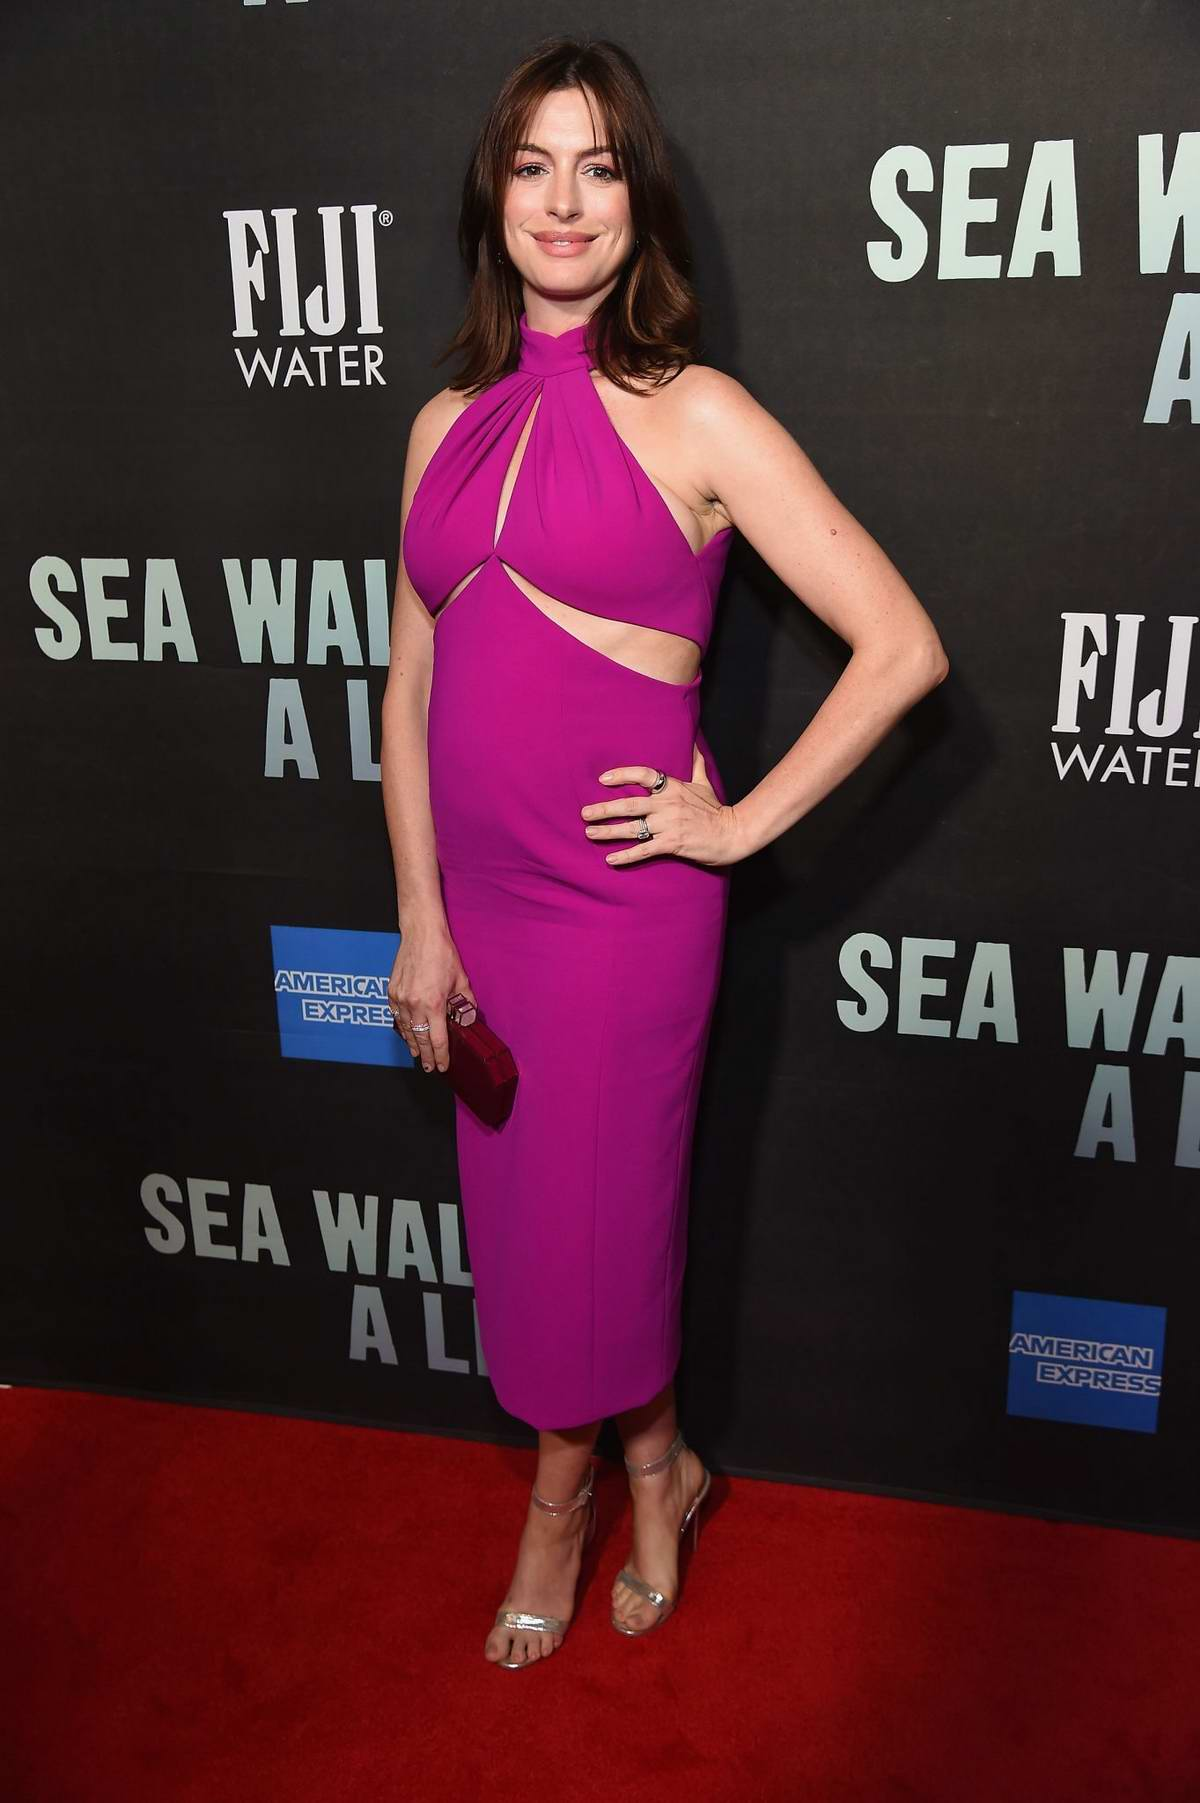 Anne Hathaway attends FIJI Water At Sea Wall A Life Opening Night On Broadway in New York City